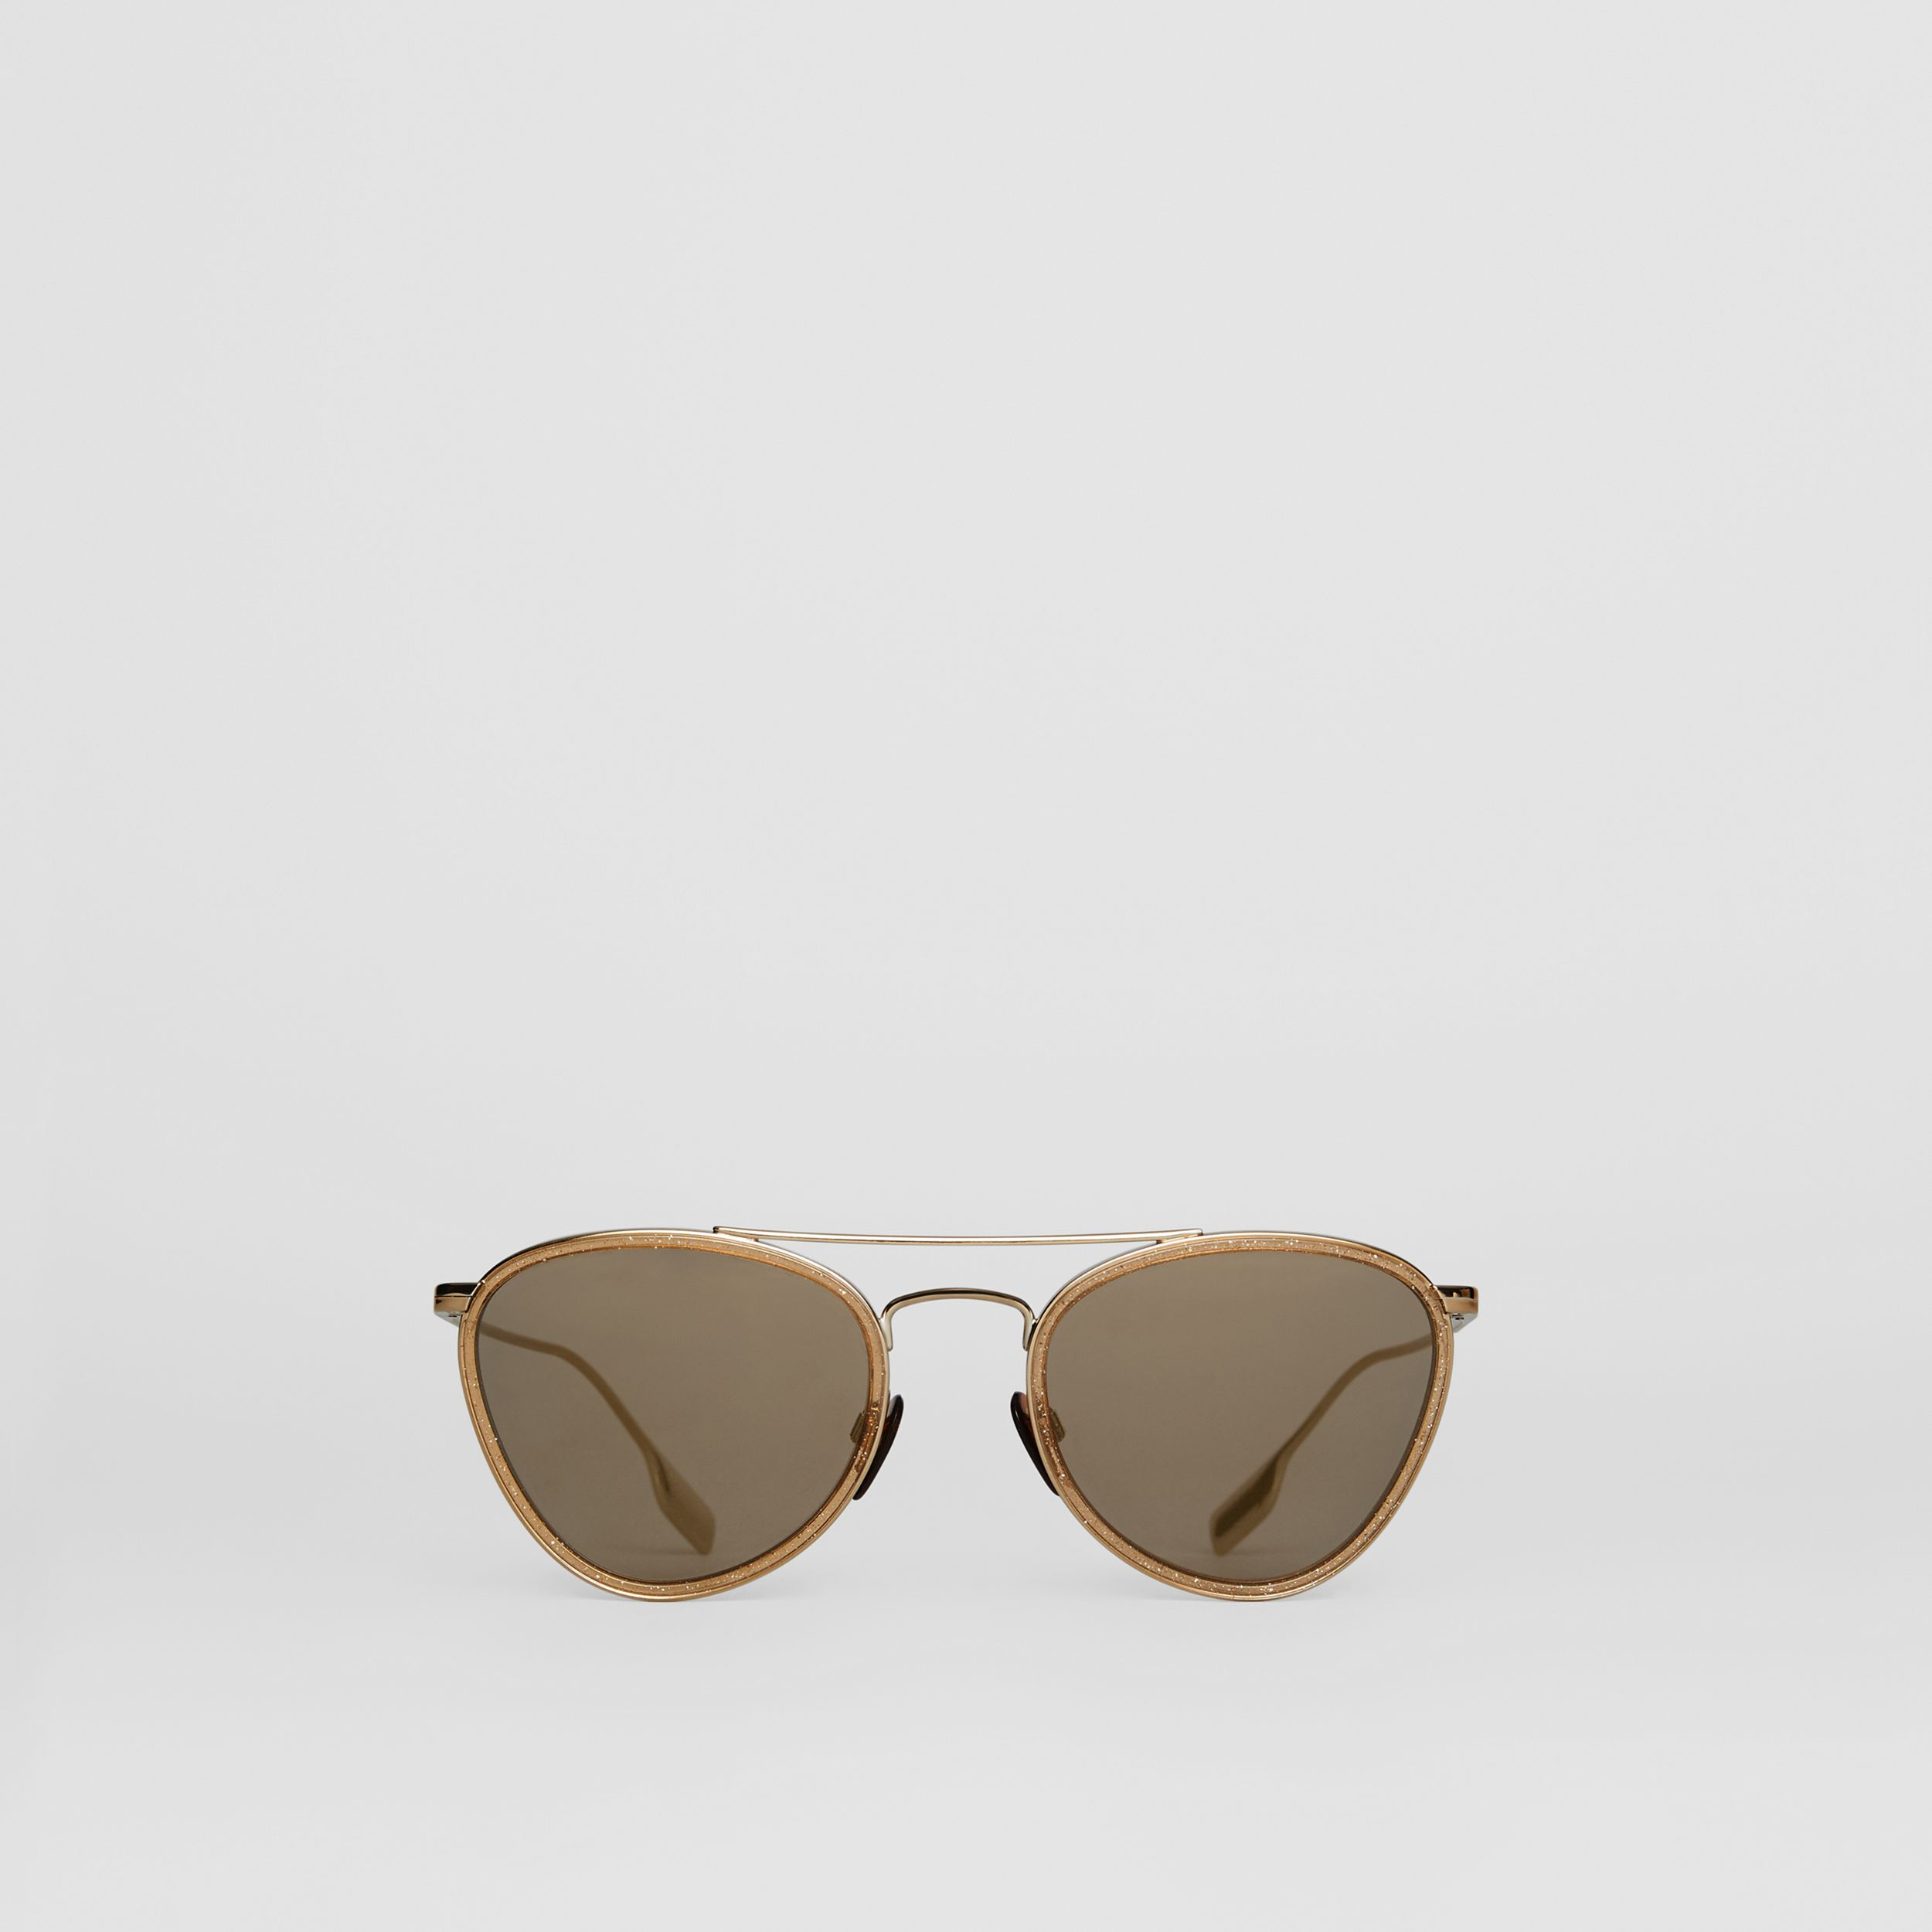 Glitter Detail Pilot Sunglasses in Gold - Women | Burberry - 1